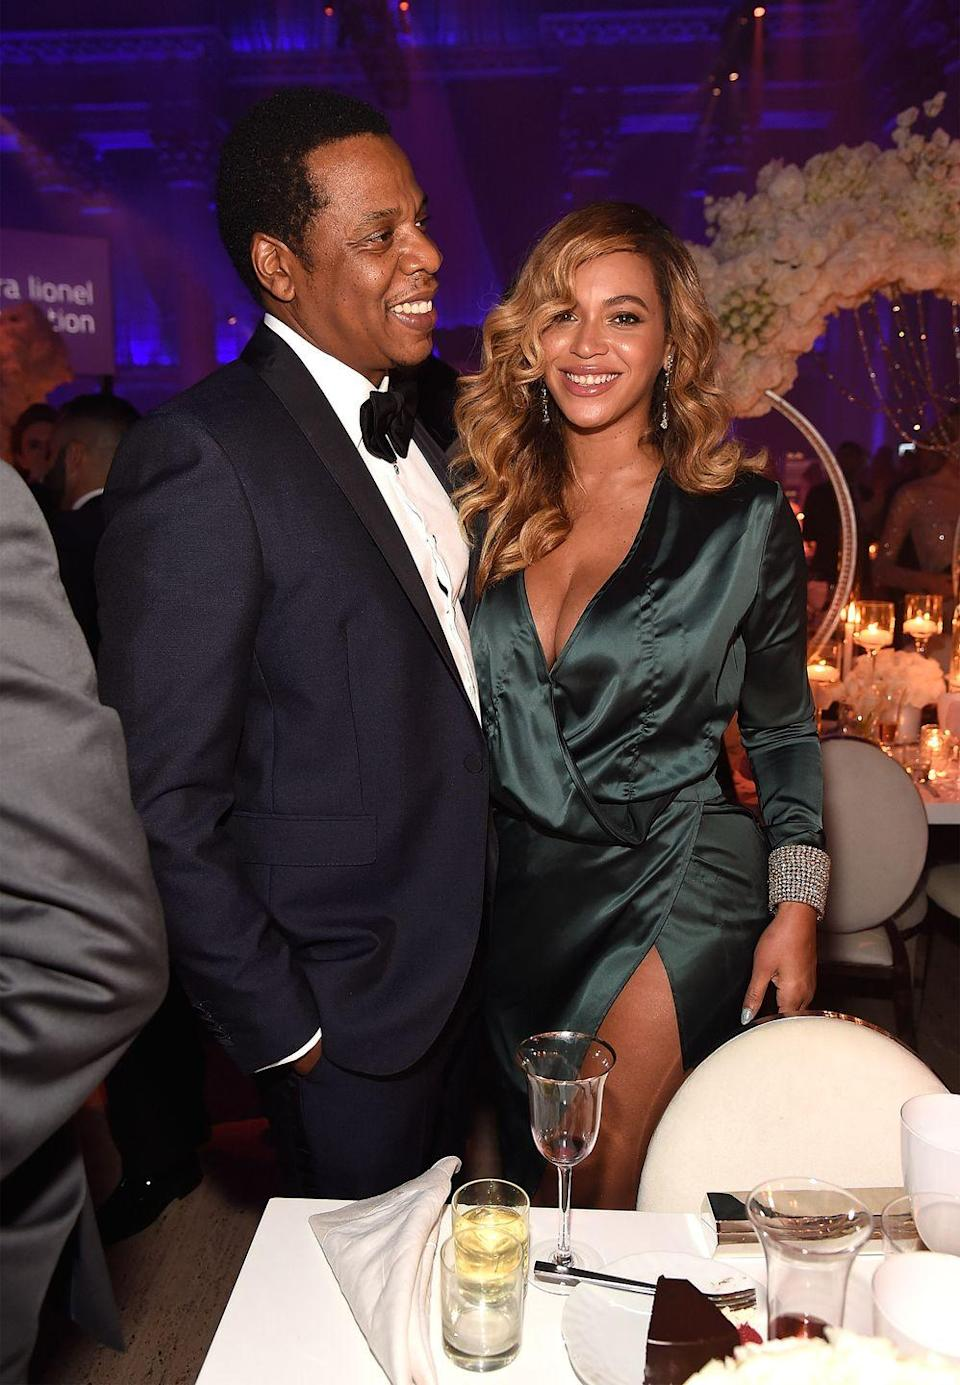 <p><strong>Age gap: </strong>12 years </p><p>Beyonce and Jay-Z started dating in 2001, but were tight-lipped about it until their first joint appearance at the 2004 VMAs. The couple got married in 2008 in a secret ceremony in their New York City apartment and welcomed their first child in 2012, as well as twins in 2017.</p>